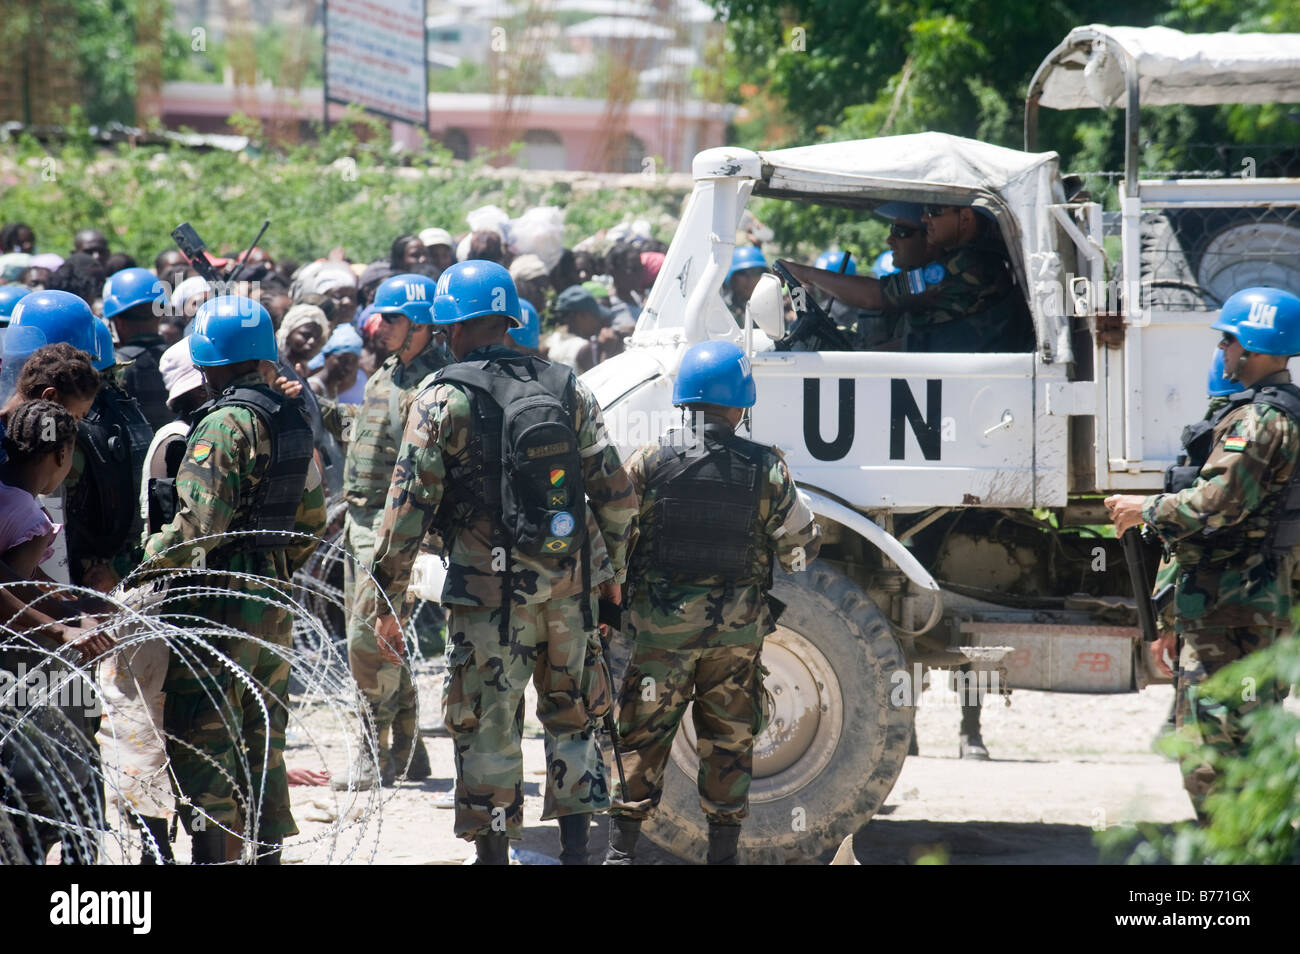 UN peacekeepers distribute emergency food to Haitians in Gonaives after three hurricanes struck in August 2008. - Stock Image